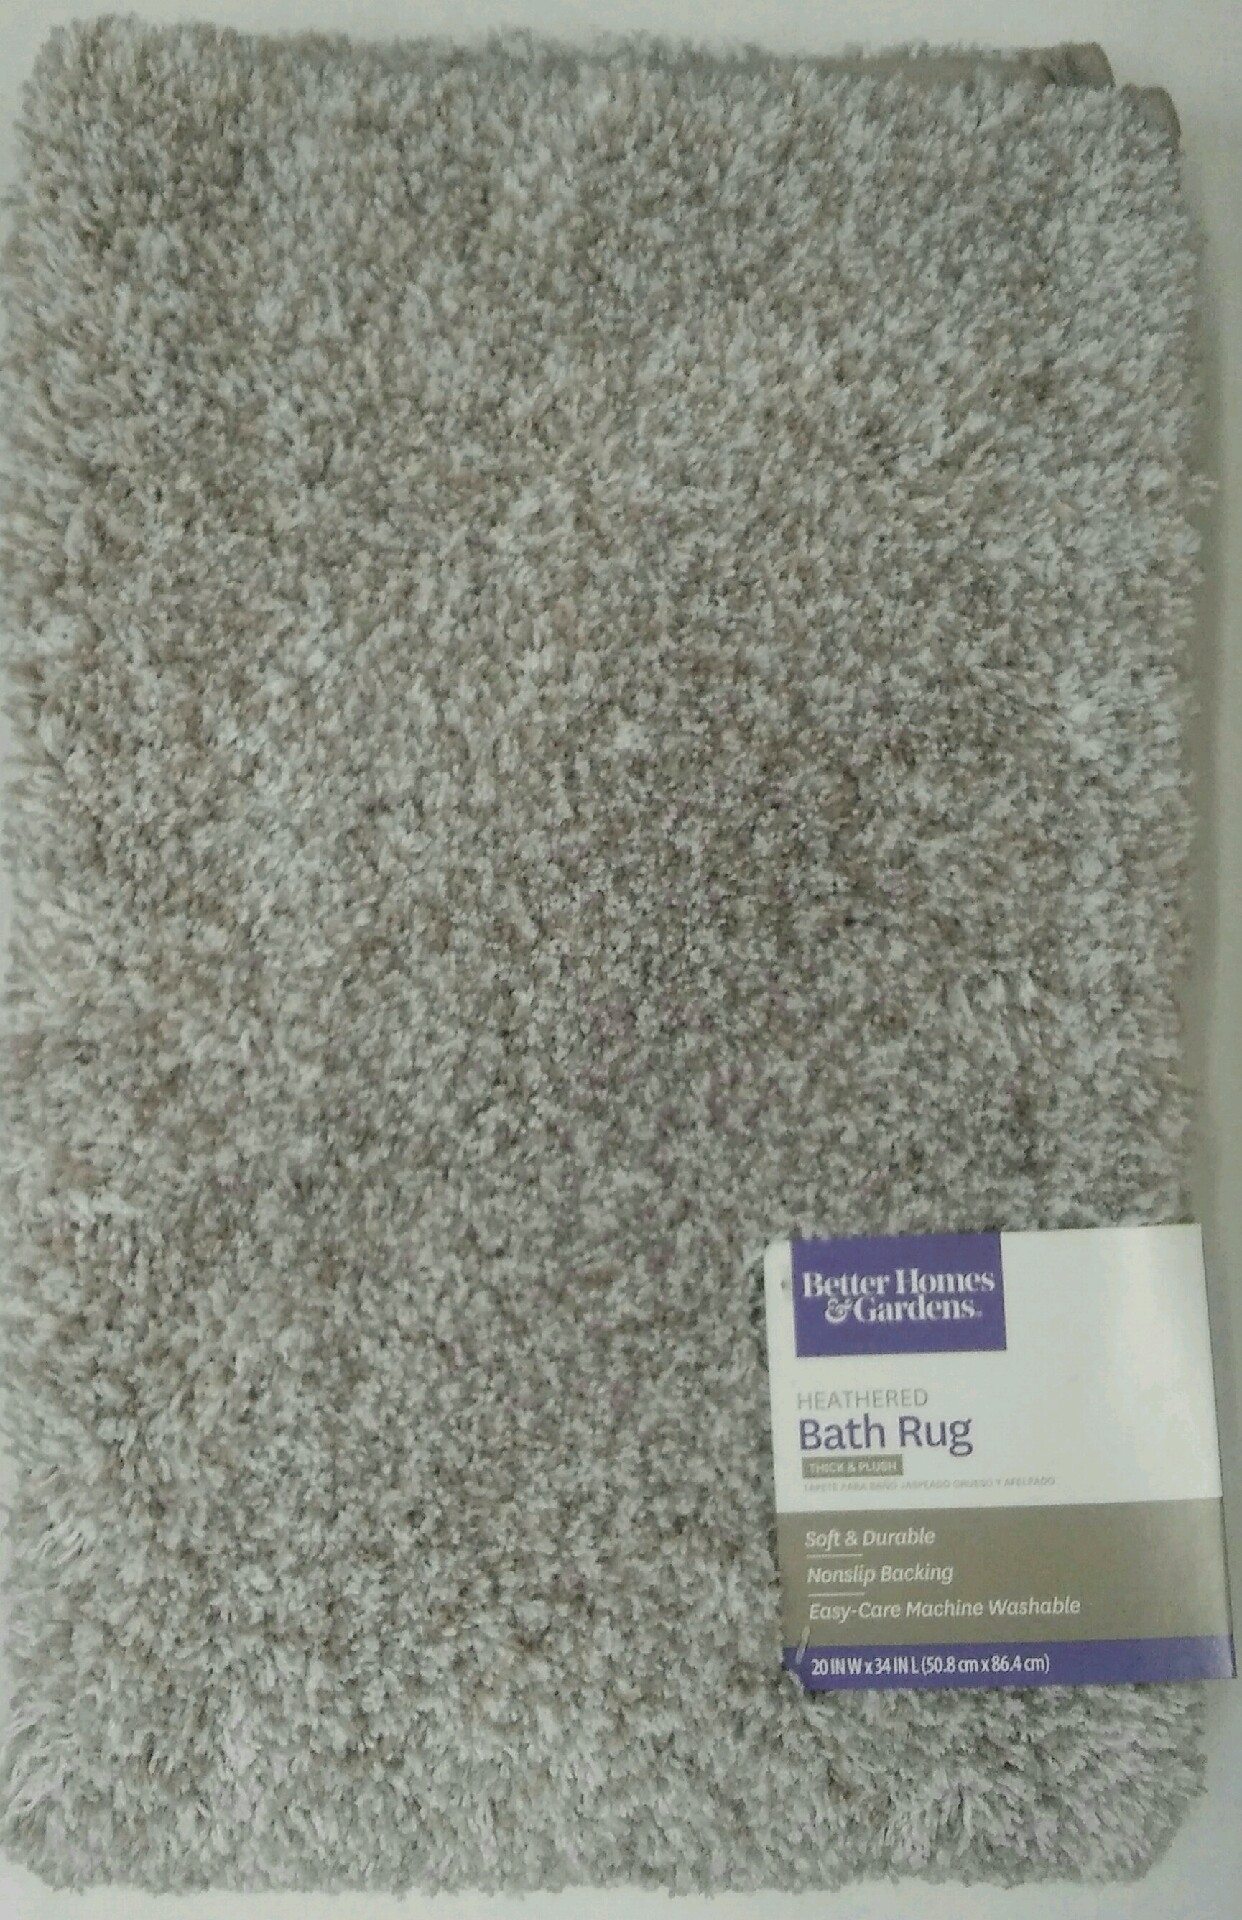 better homes and gardens thick and plush bath rug 20 x 34 taupe splash heather walmart com